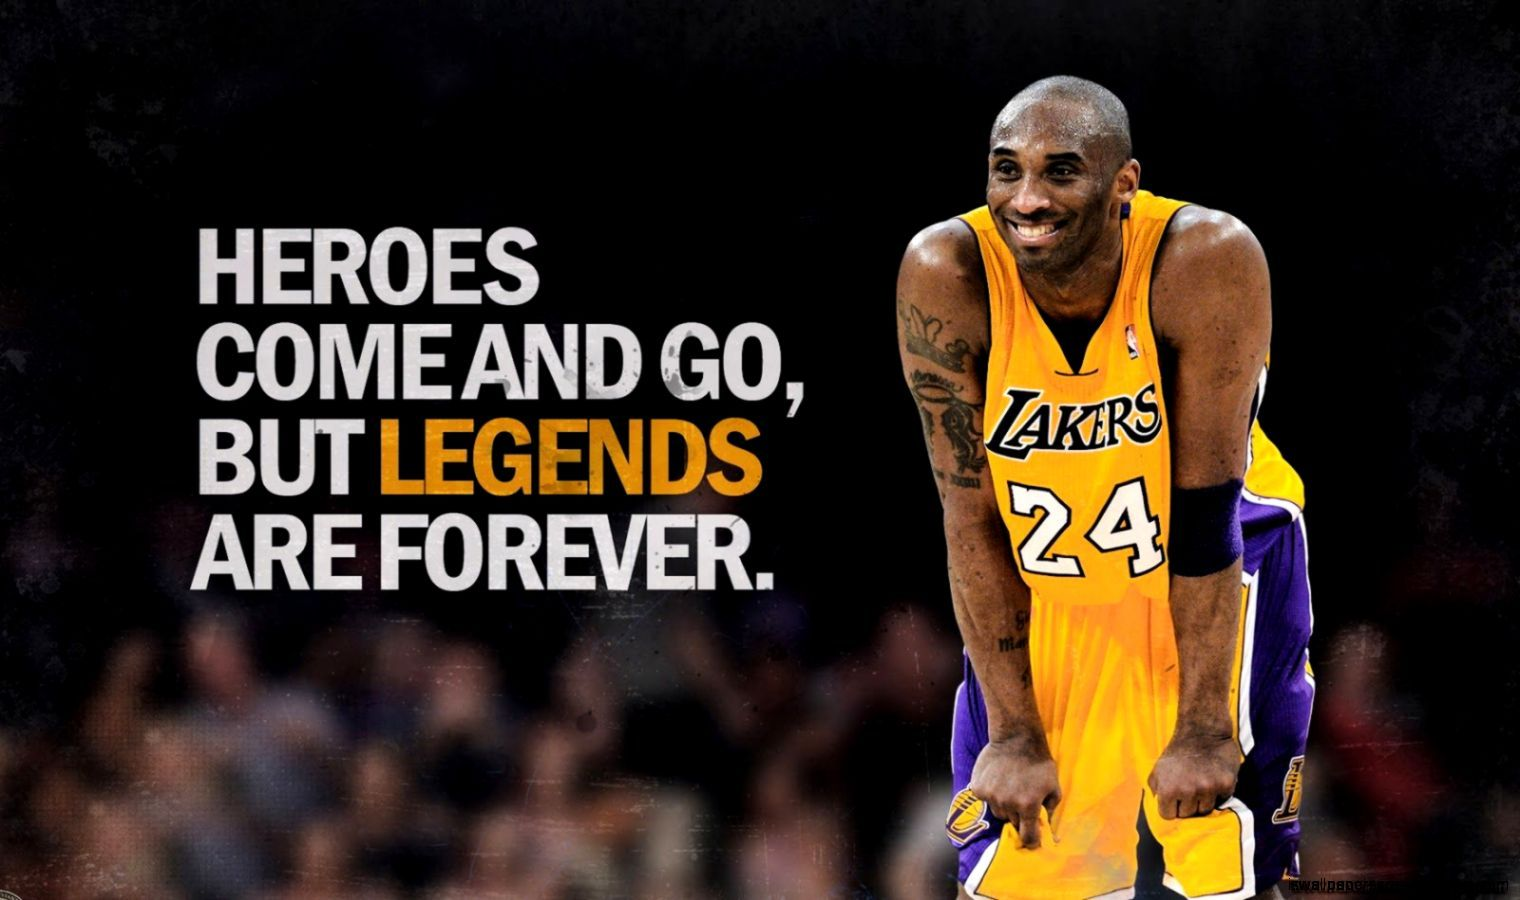 kobe bryant wall papers